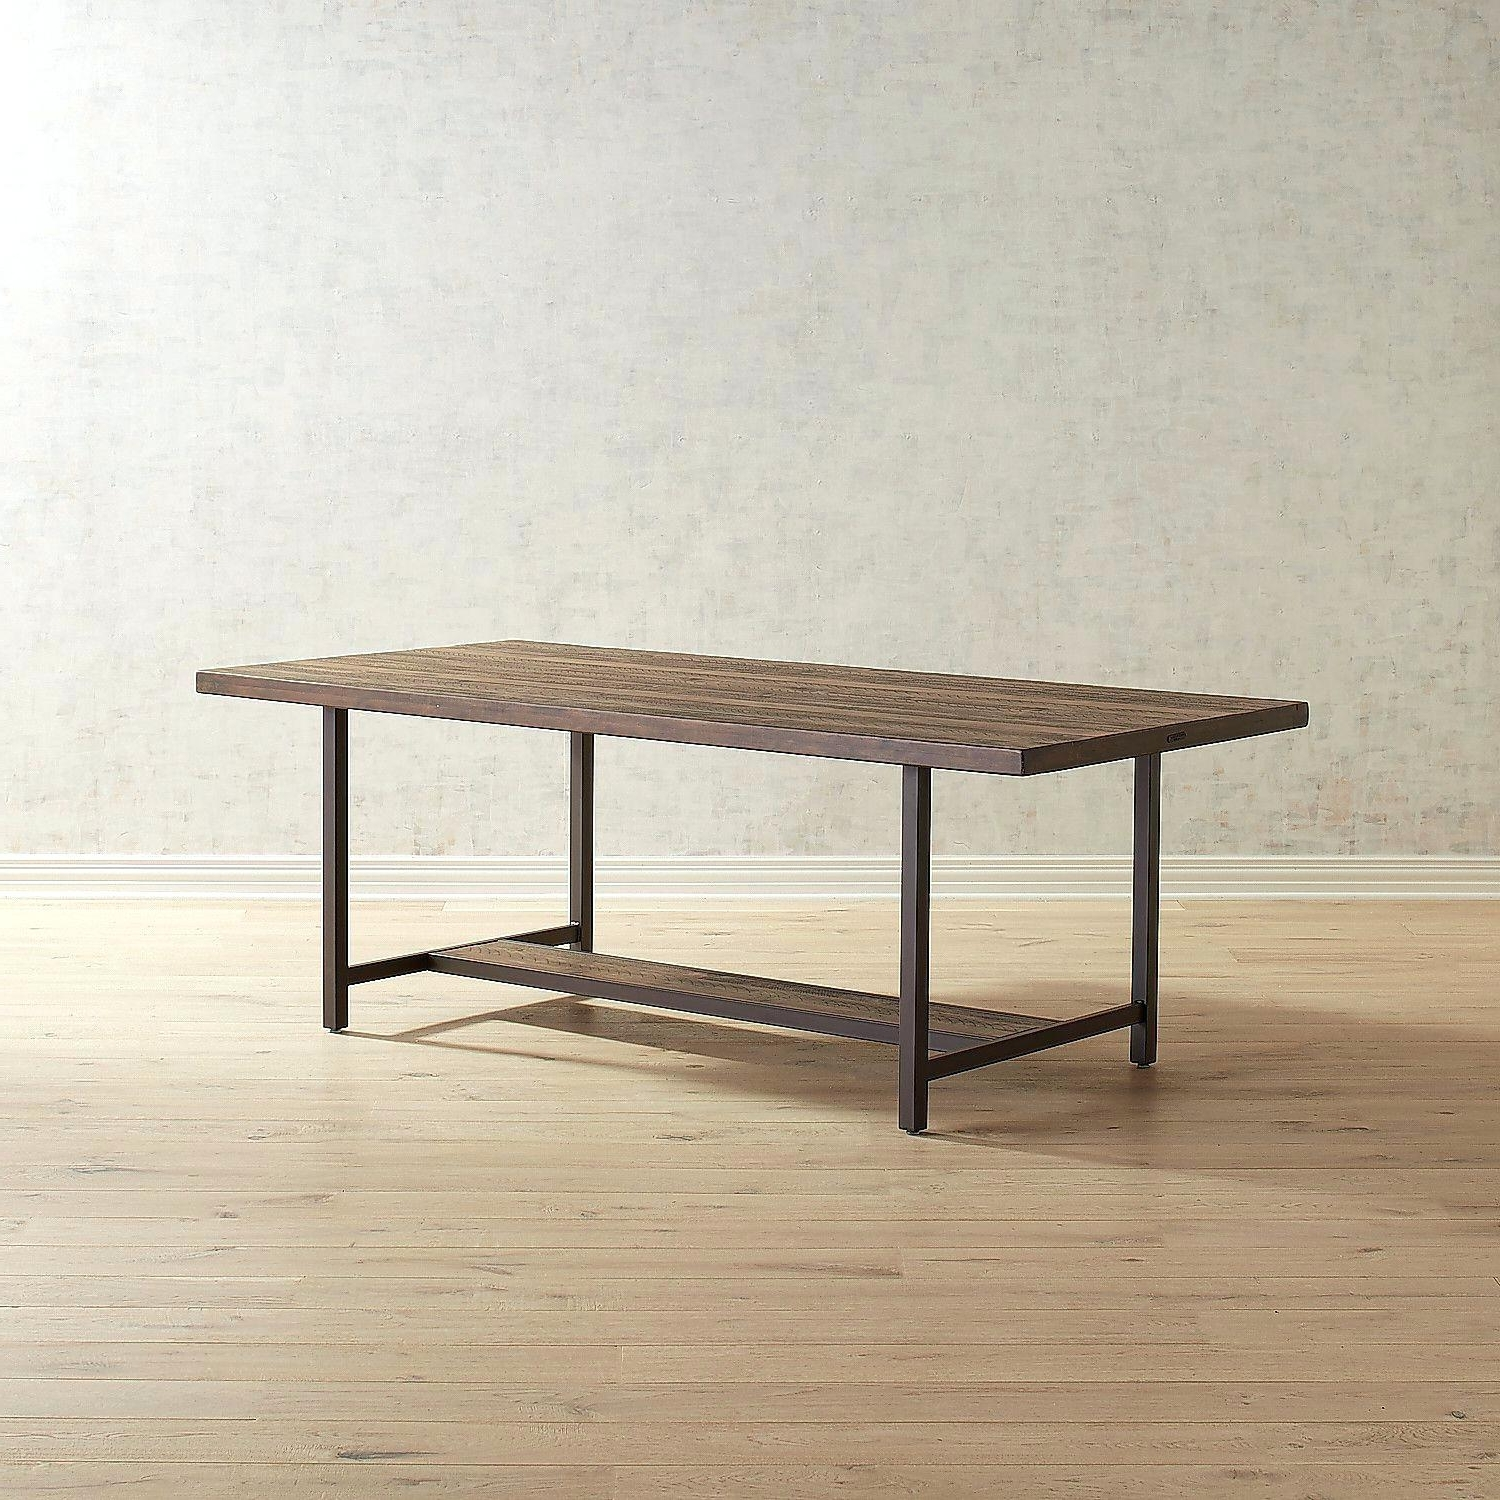 Most Recent Magnolia Home Dining Table Industrial – Battenhall Throughout Magnolia Home Sawbuck Dining Tables (View 22 of 25)